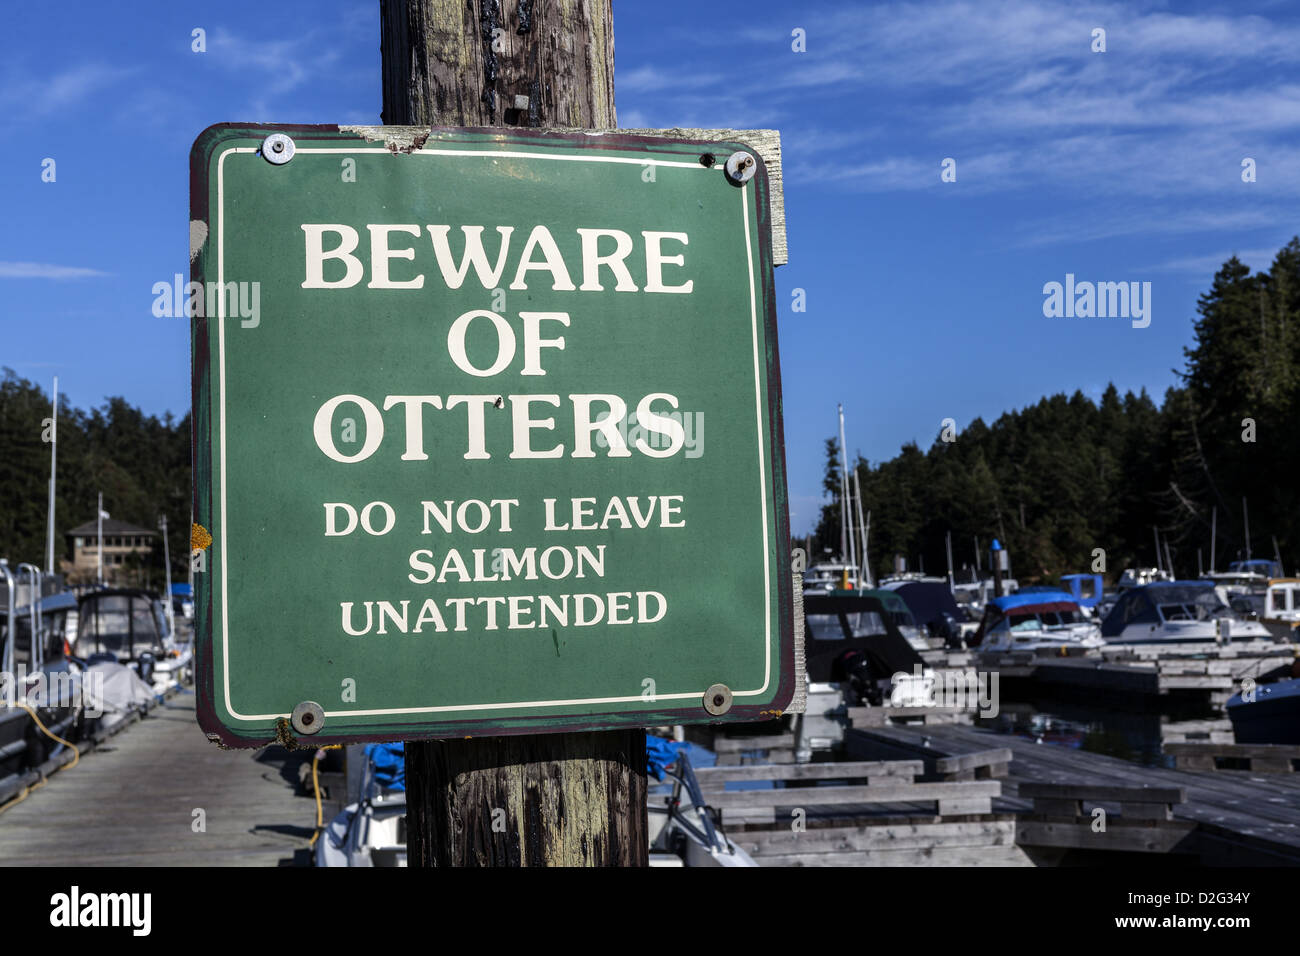 Beware of otters notice on the entrance of dock at Pedder Bay RV Resort and Marina near Metchosin Vancouver Island, - Stock Image